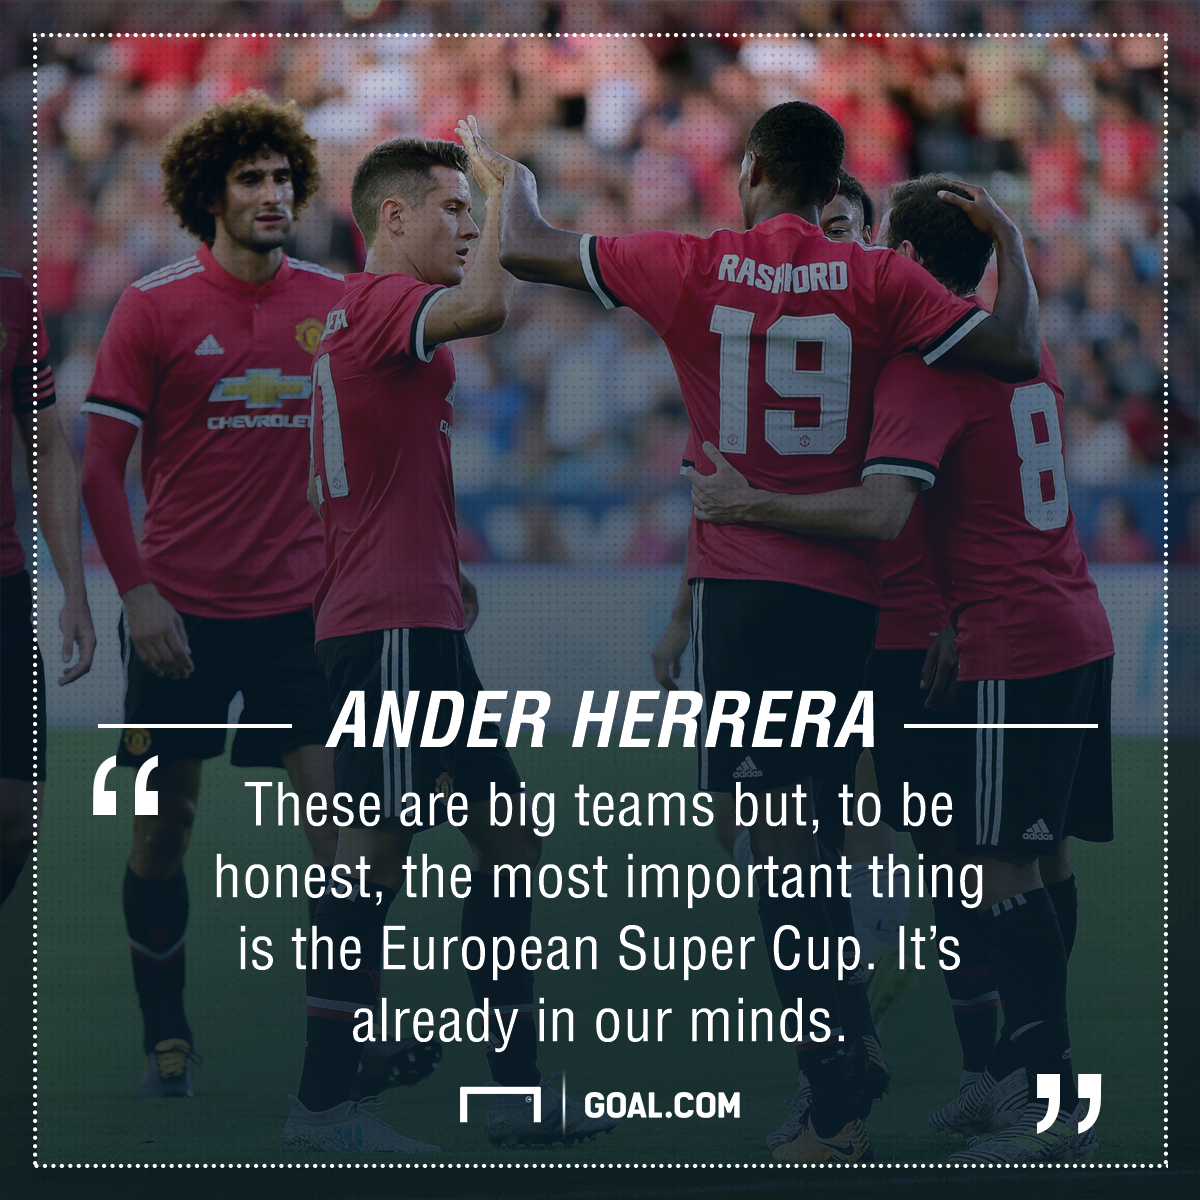 Ander Herrera Manchester United Super Cup